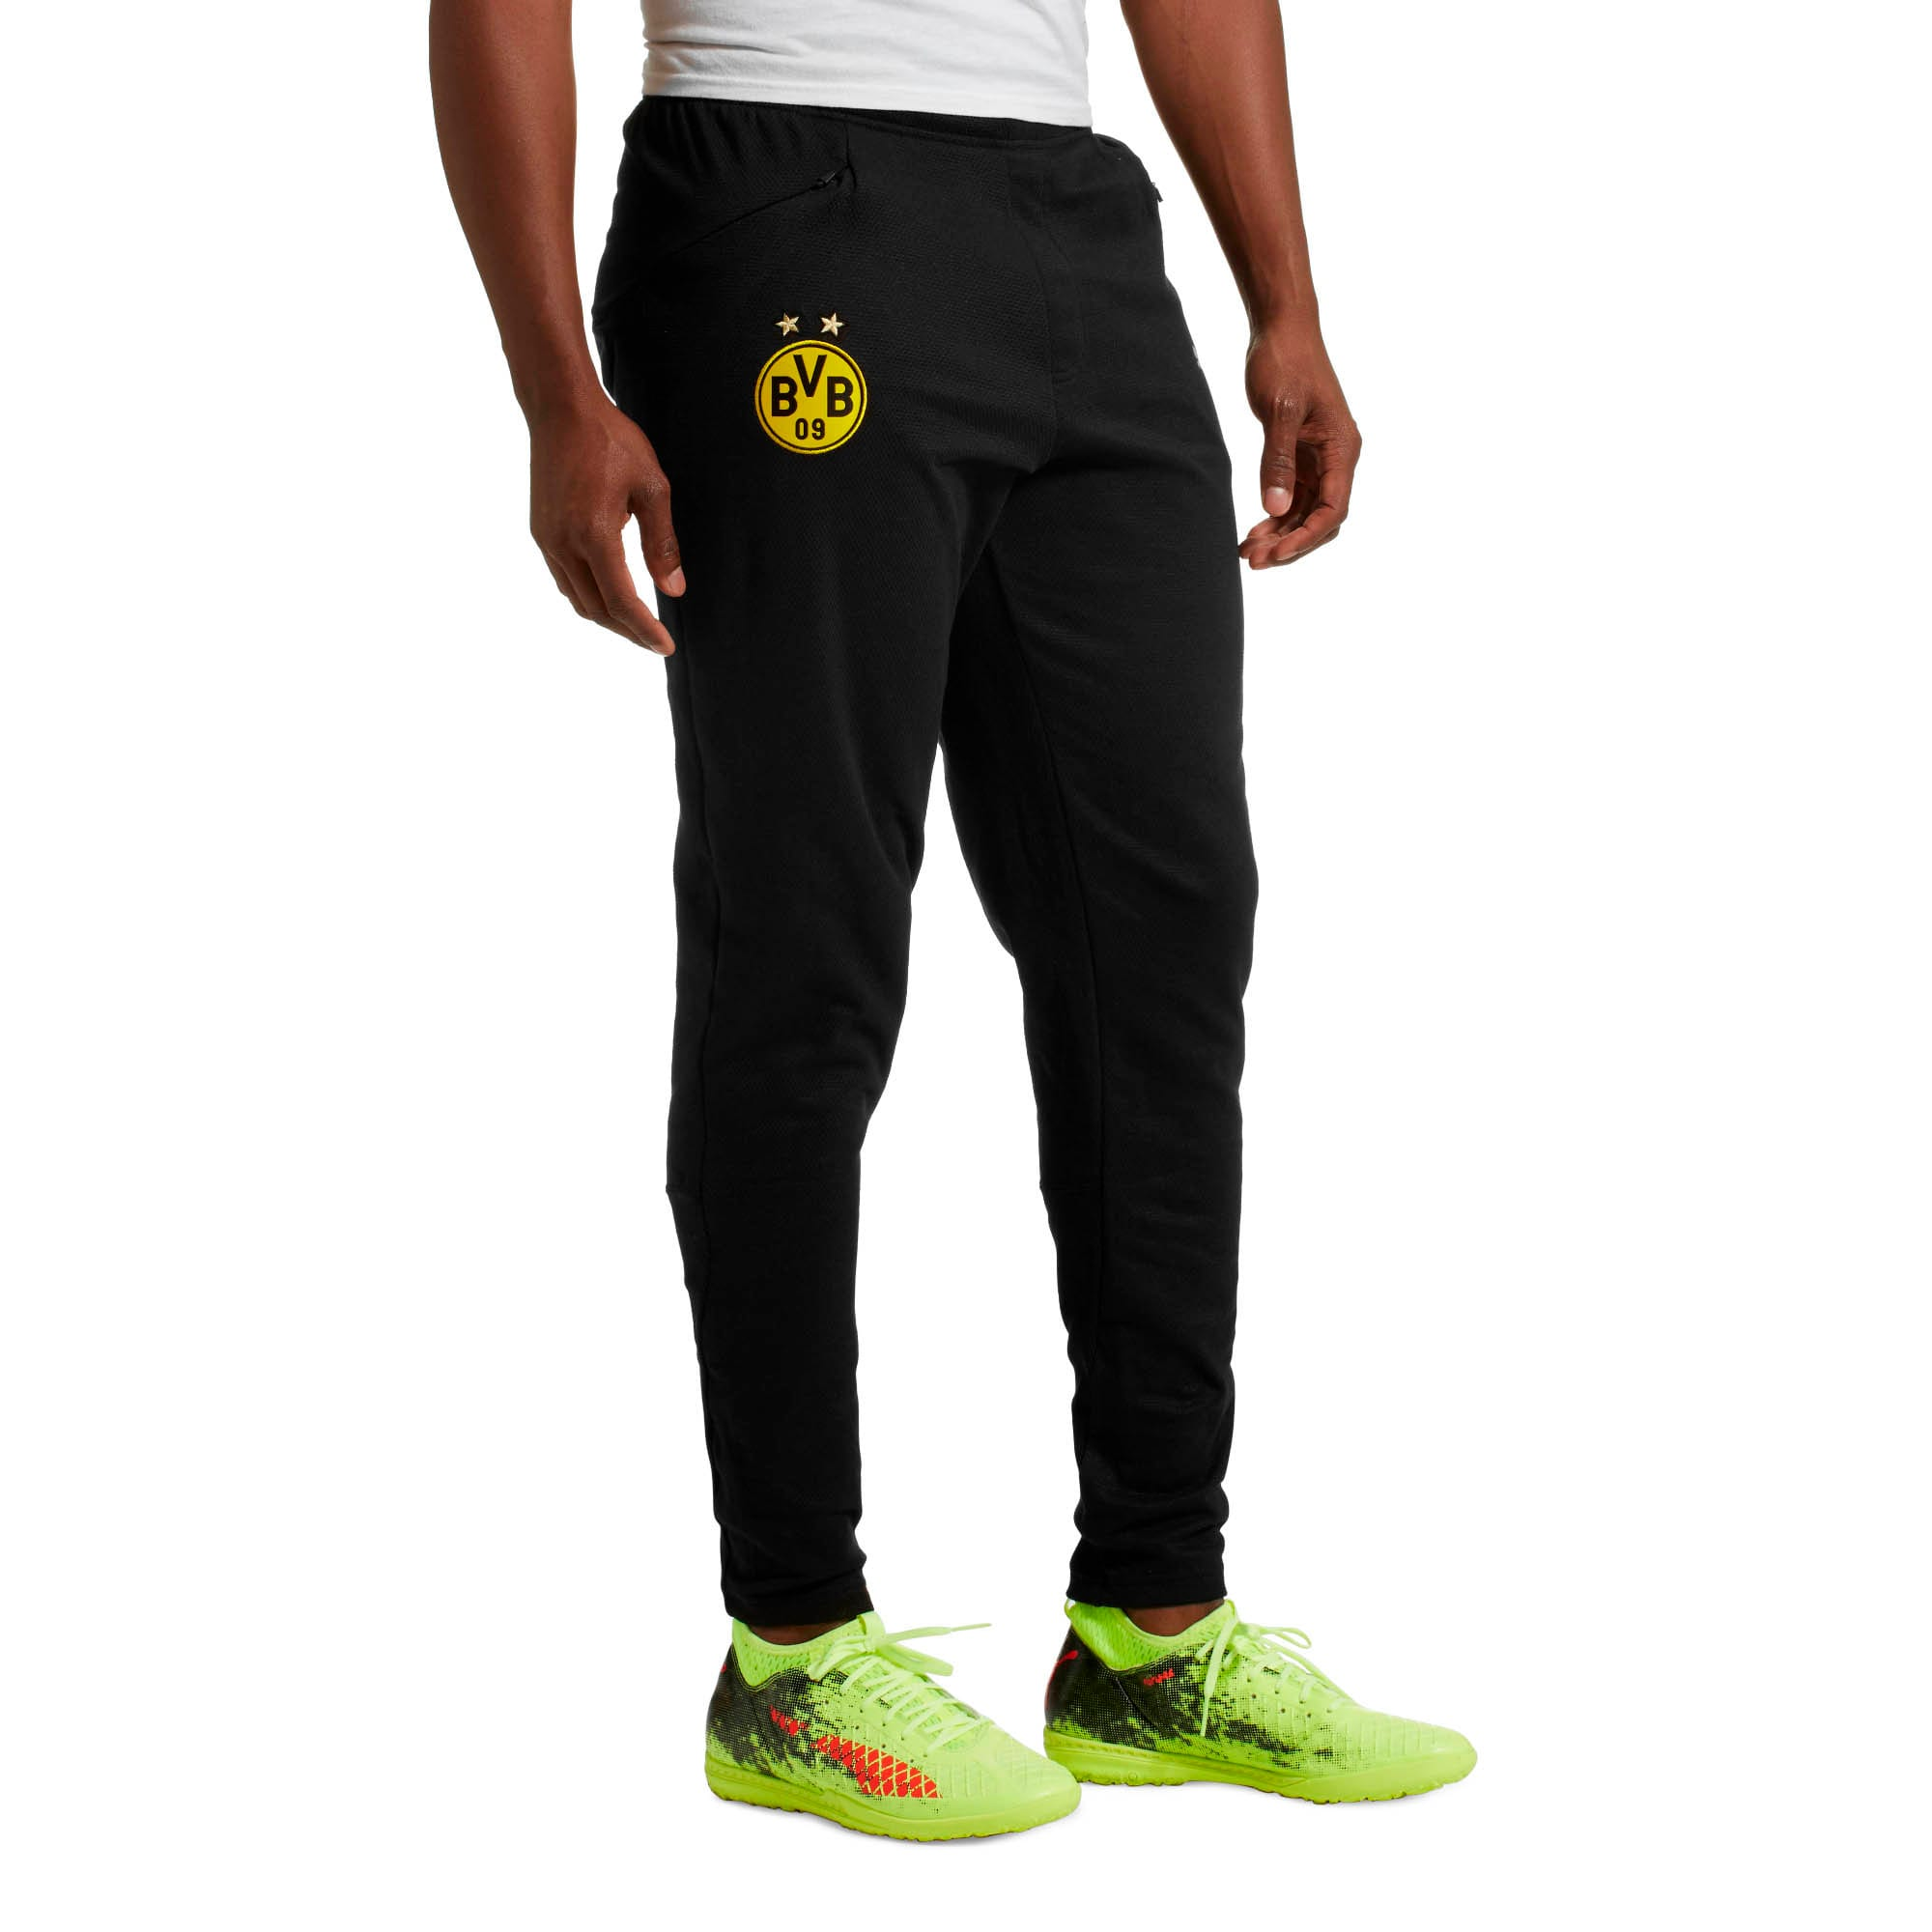 Thumbnail 2 of BVB Casual Men's Sweatpants, Puma Black, medium